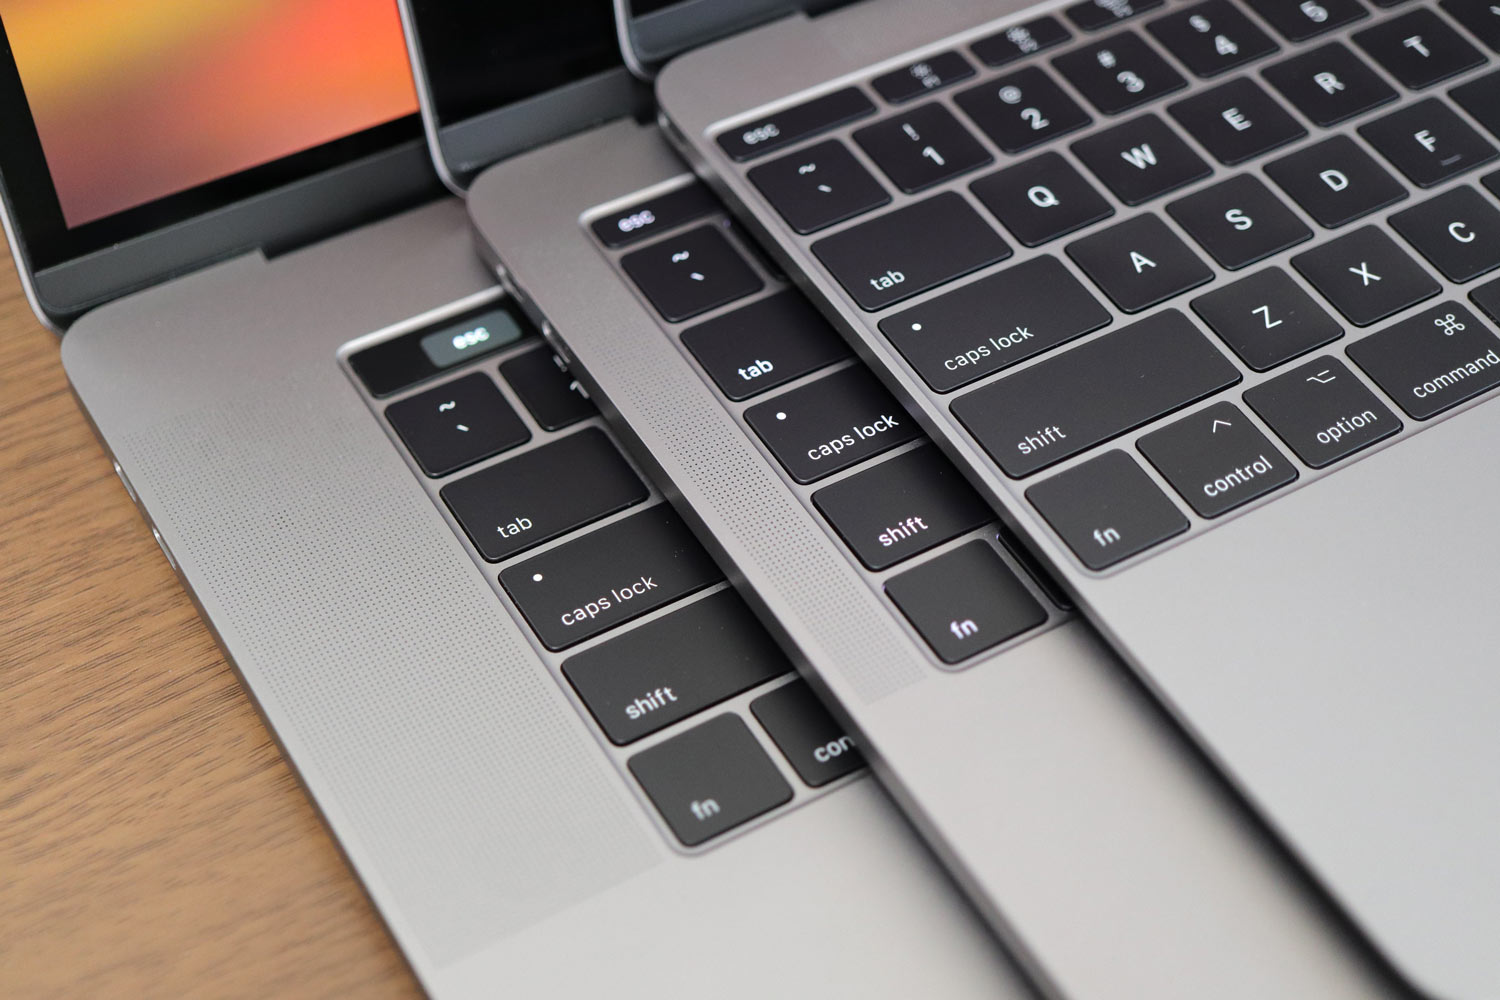 MacBookシリーズのスピーカー比較